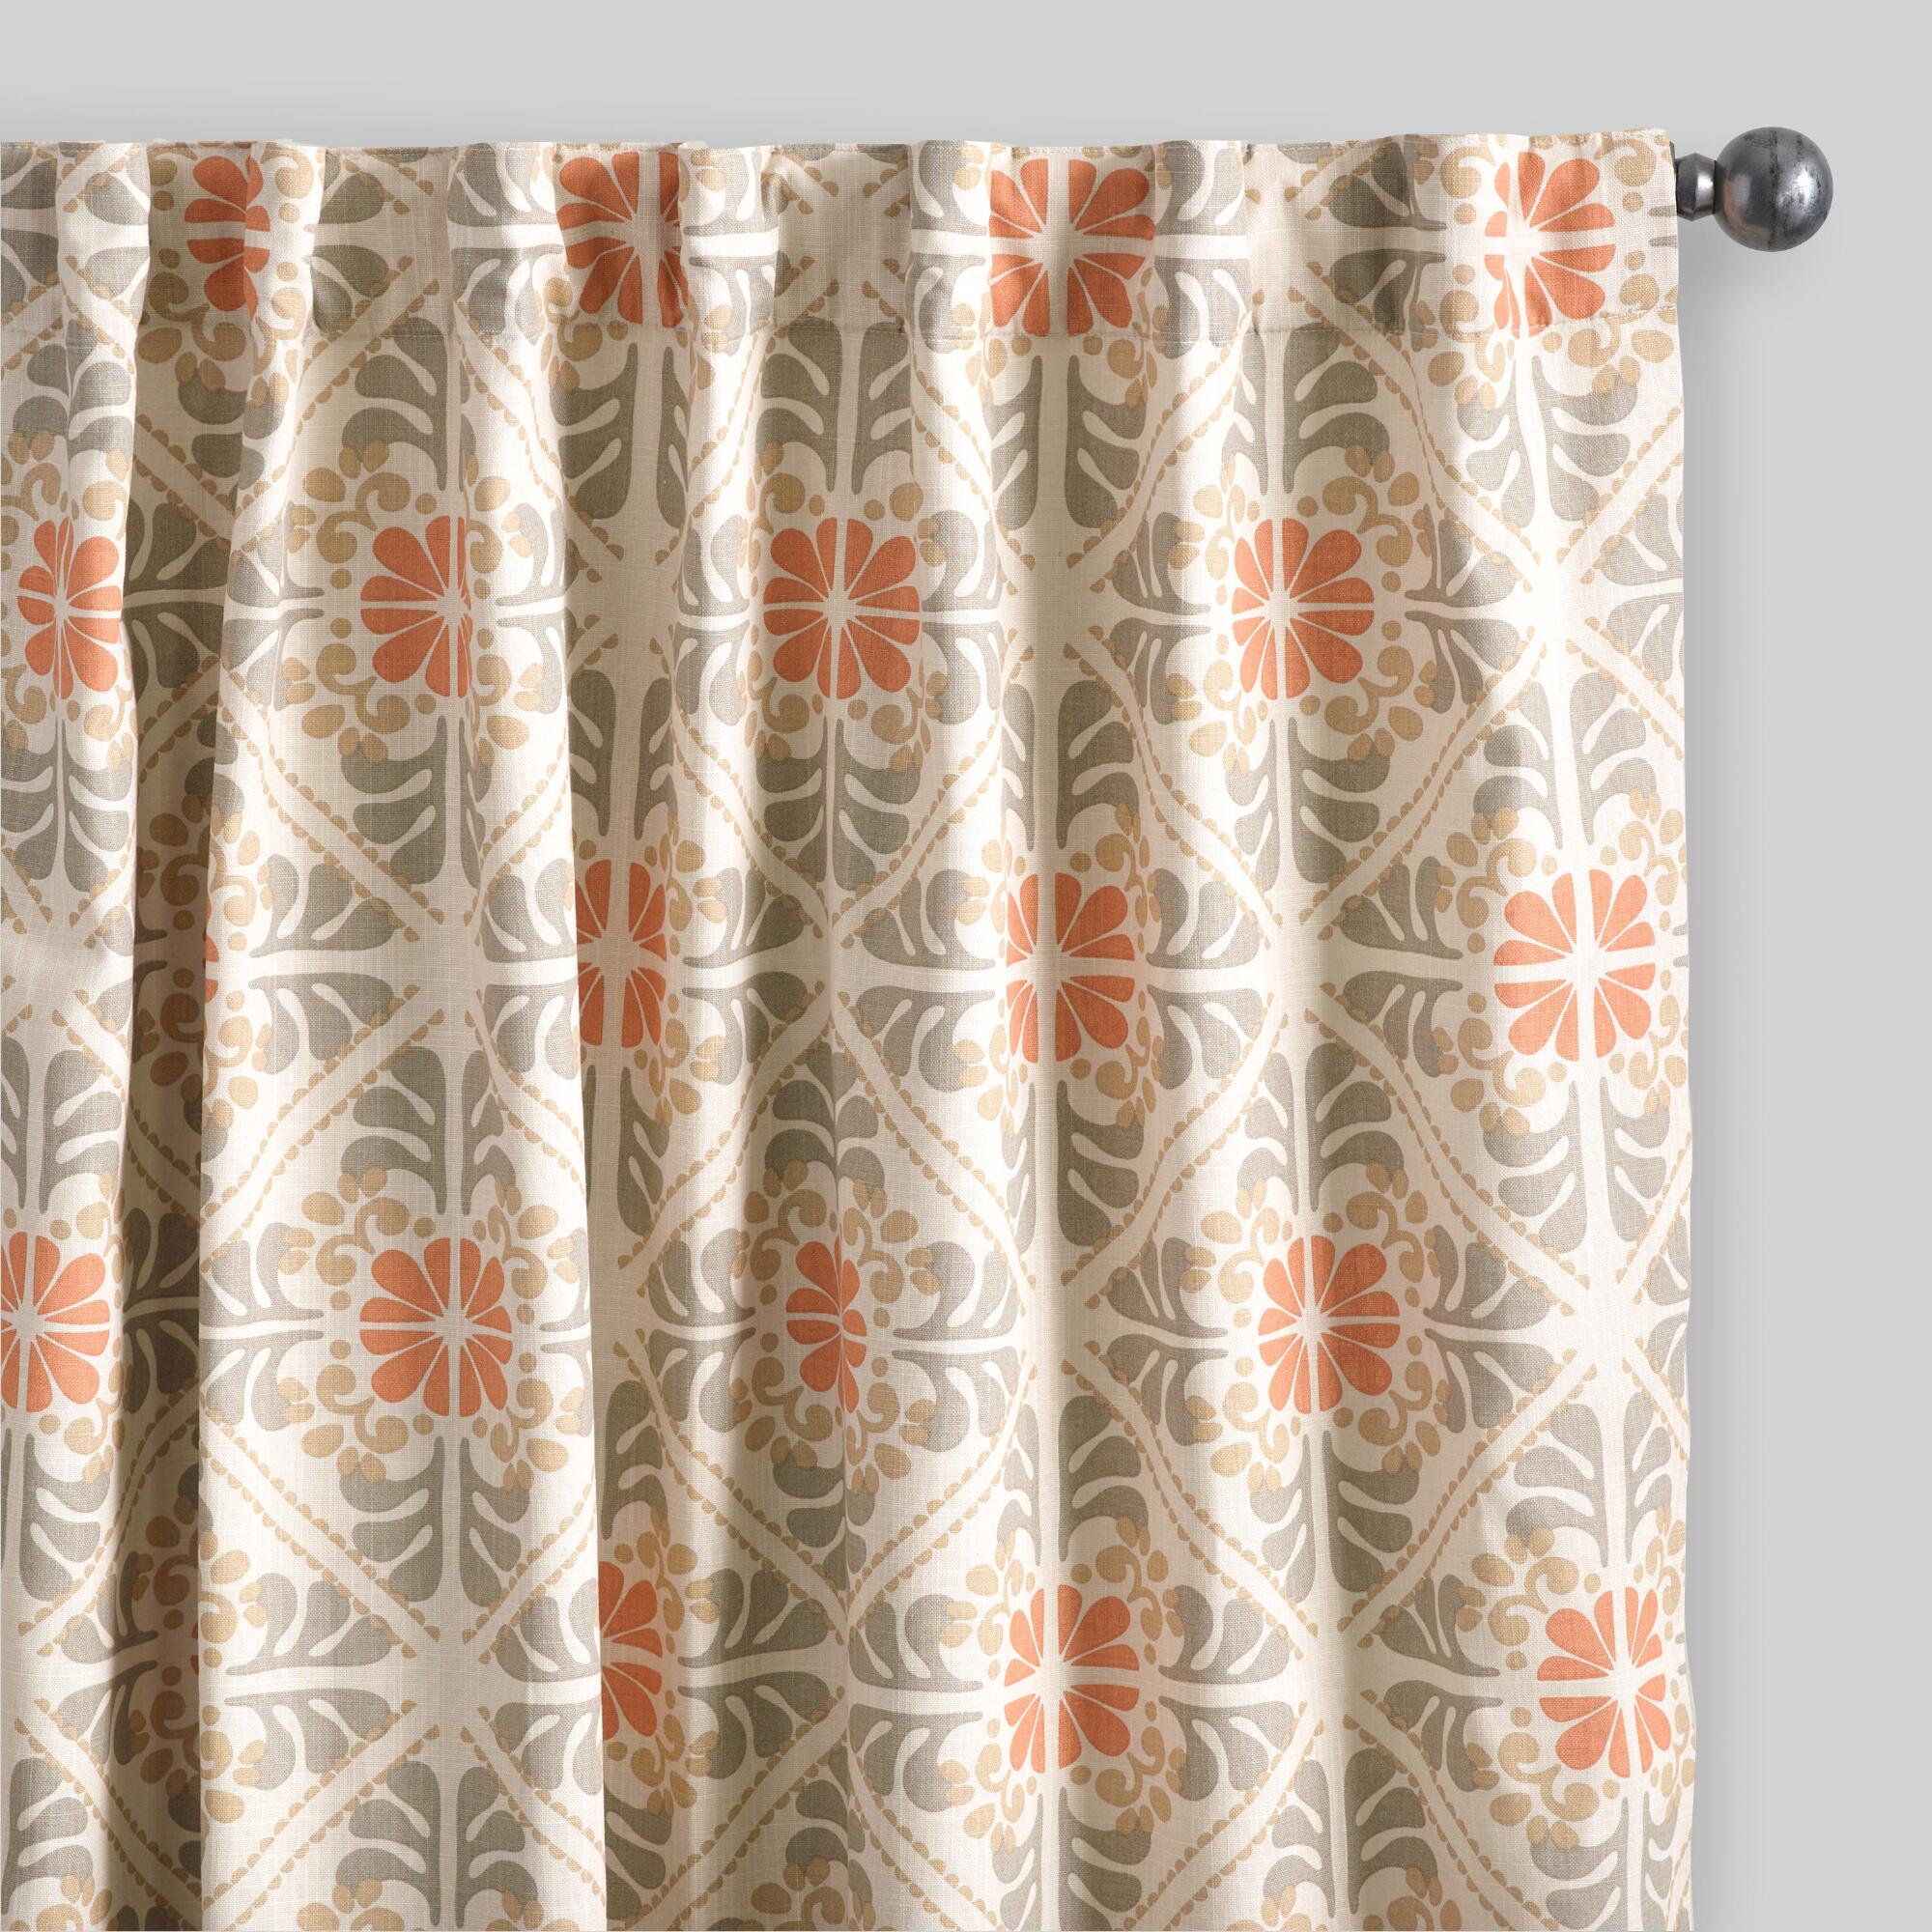 Cafe curtains for bathroom - Orange Tile Cotton Concealed Tab Top Curtains Set Of 2